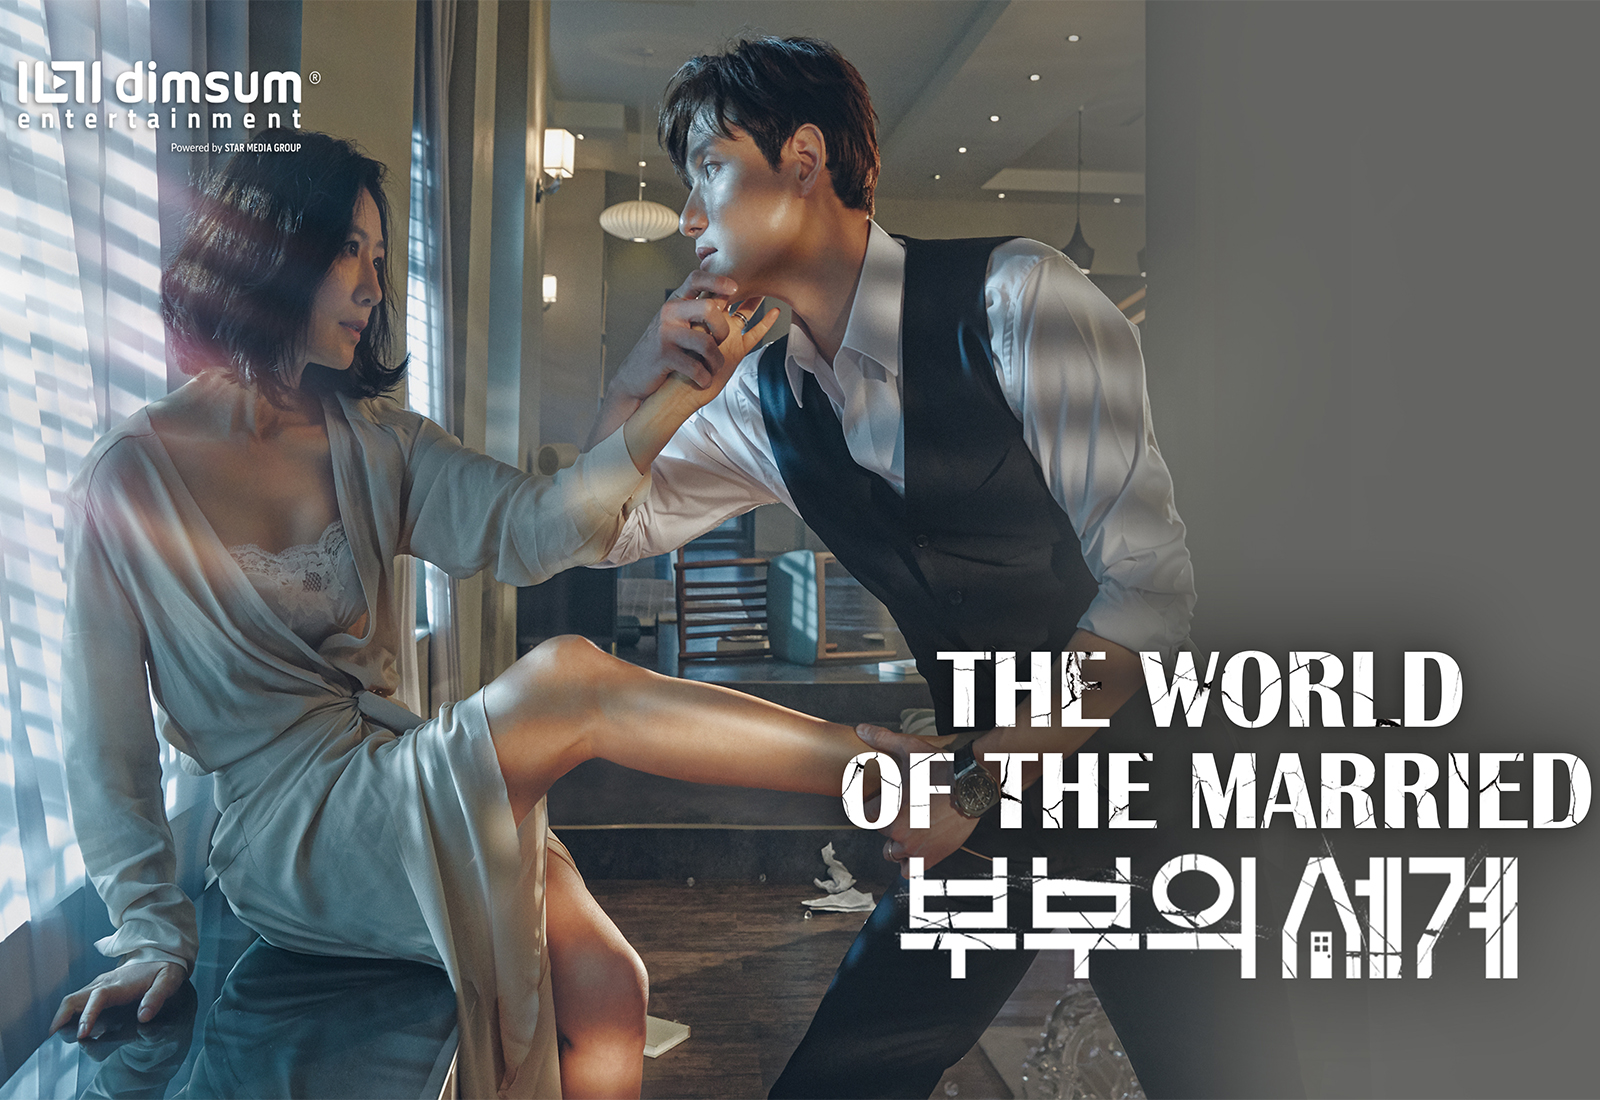 Photo of The World Of The Married Kini Boleh Distrim Di Dimsum Entertainment